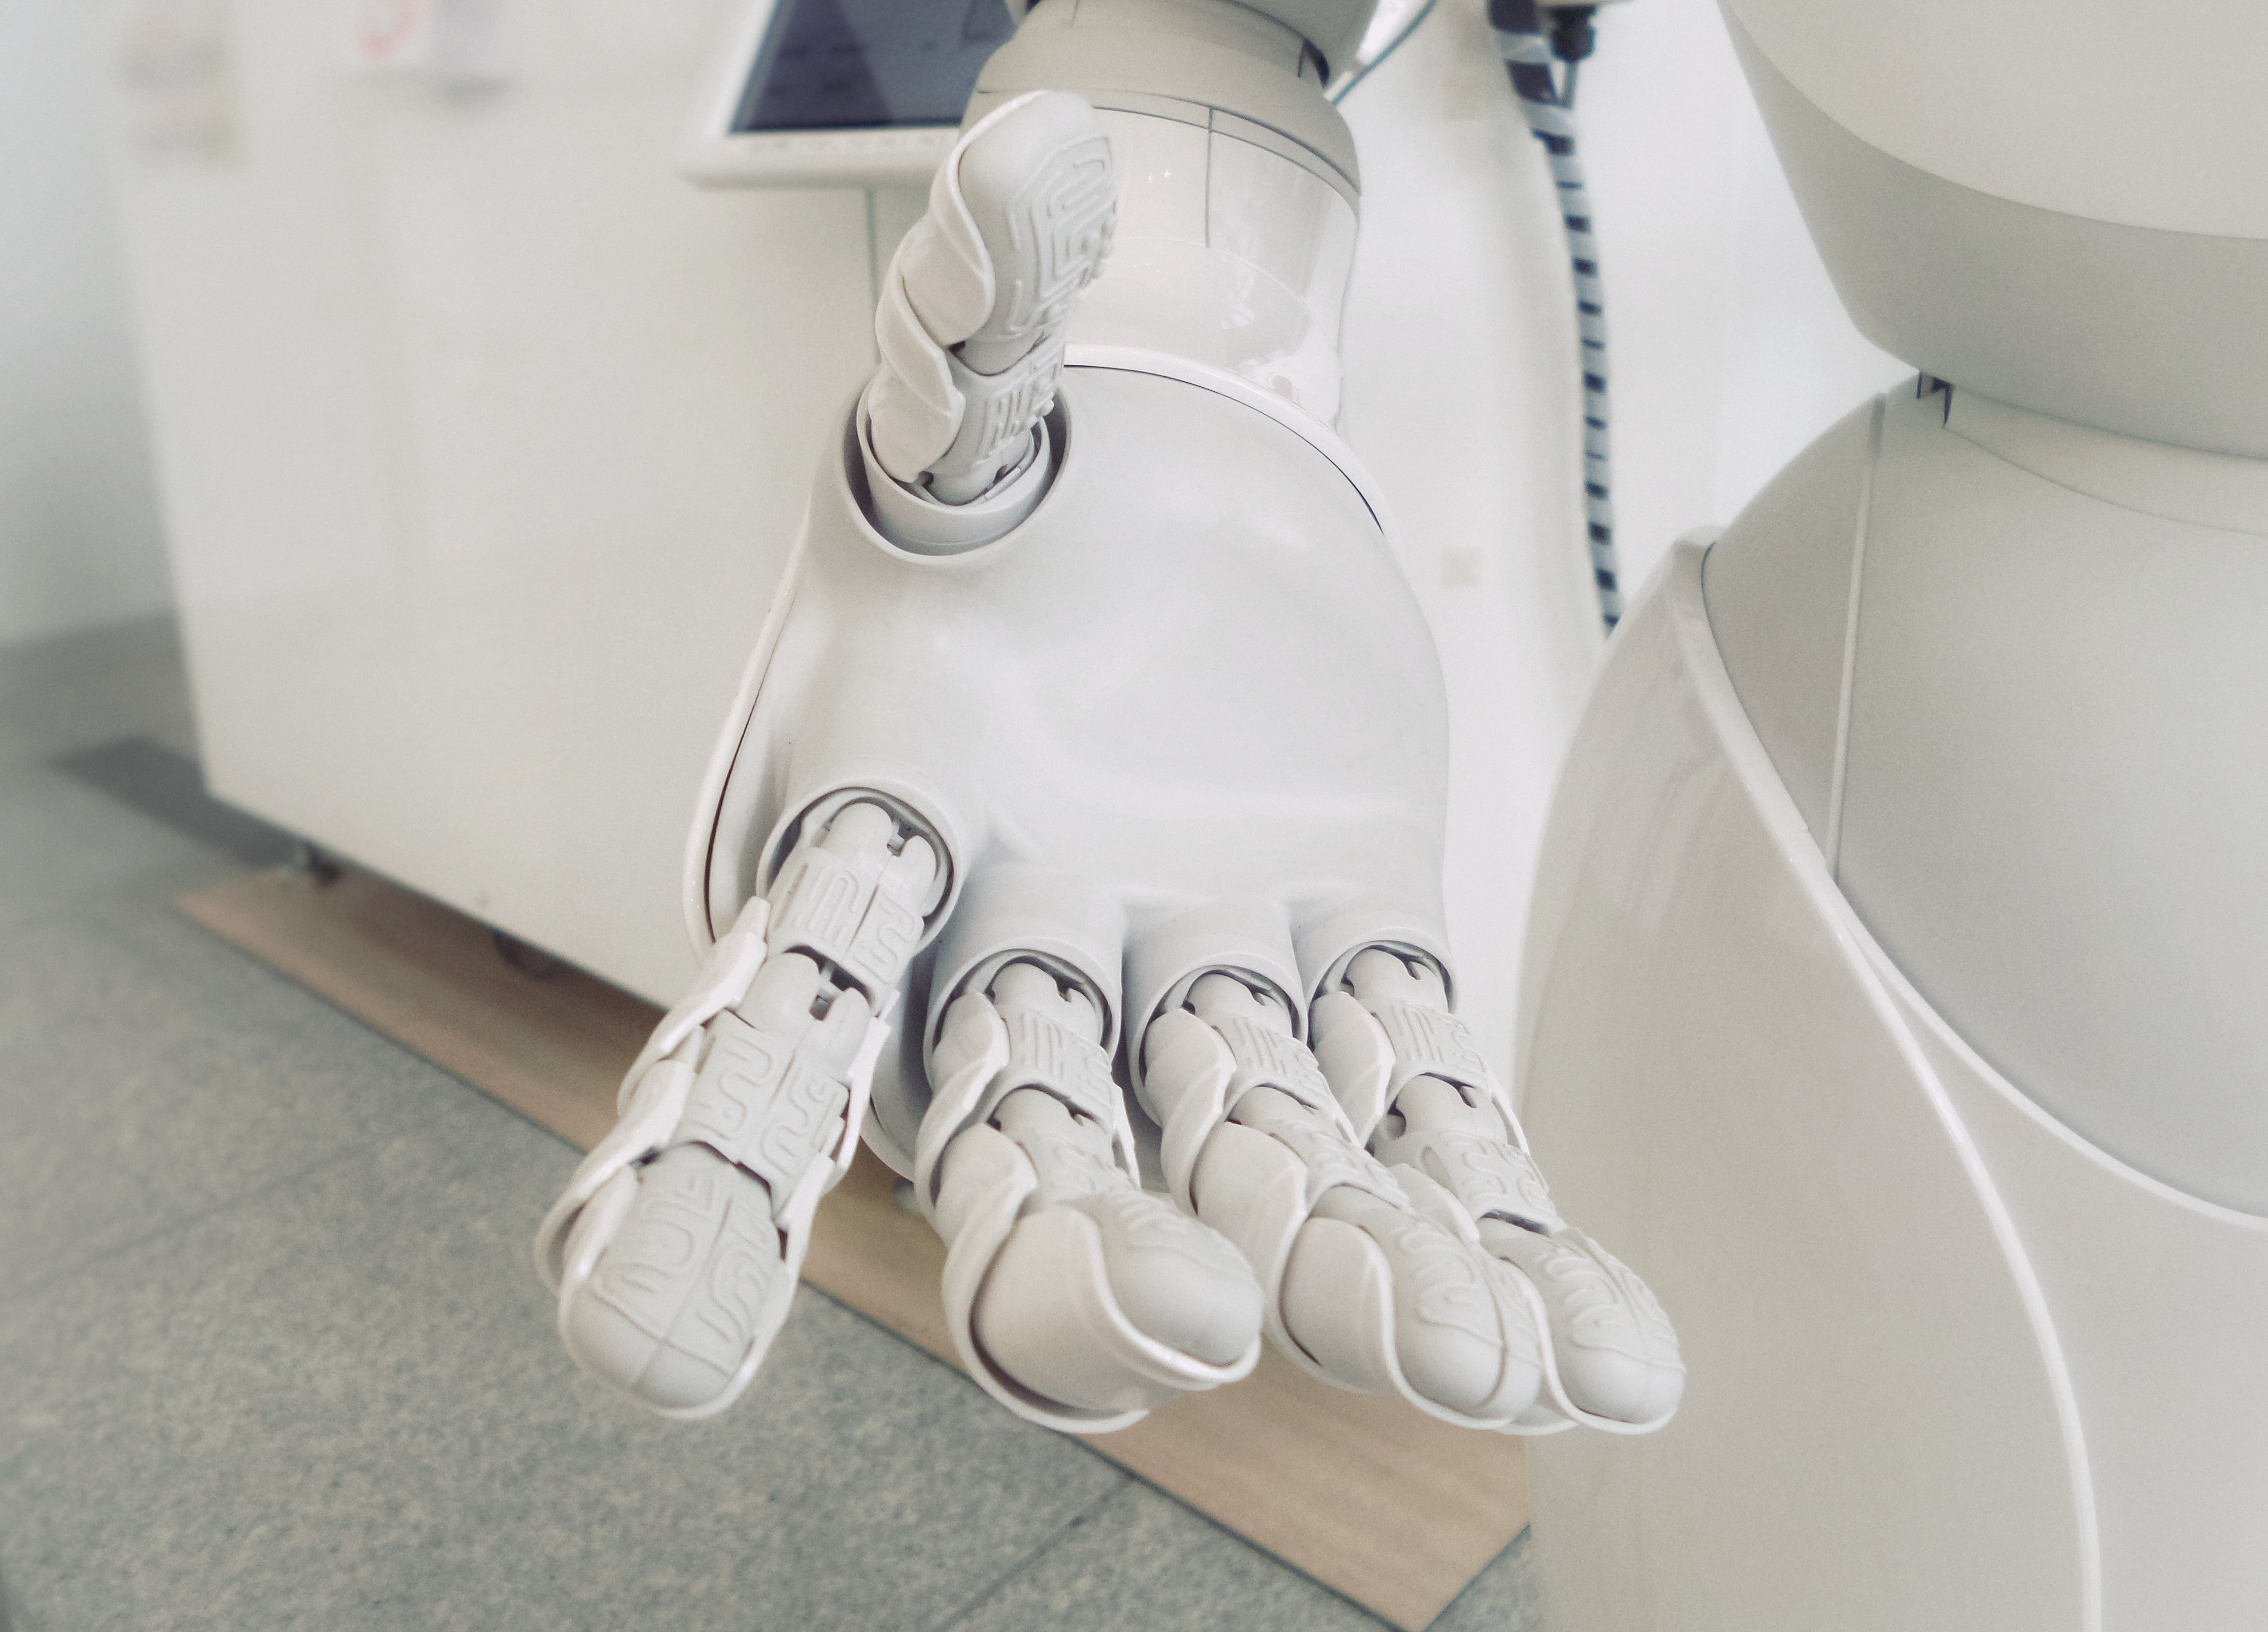 Is It Dangerous to Name Your Robot Colleague?